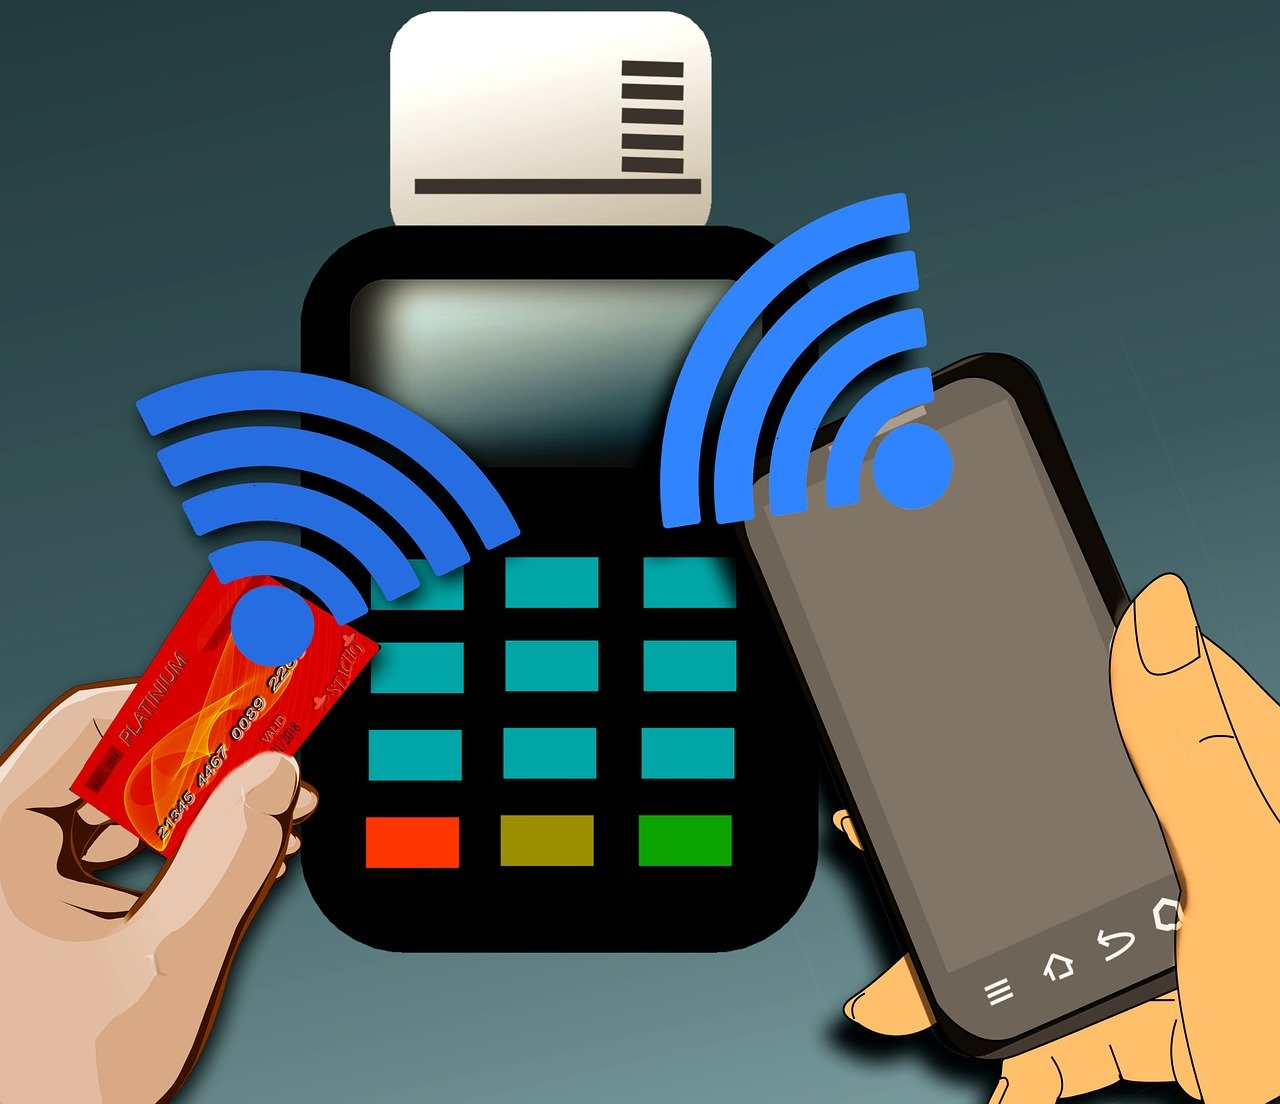 payment systems, nfc near field communication, wireless